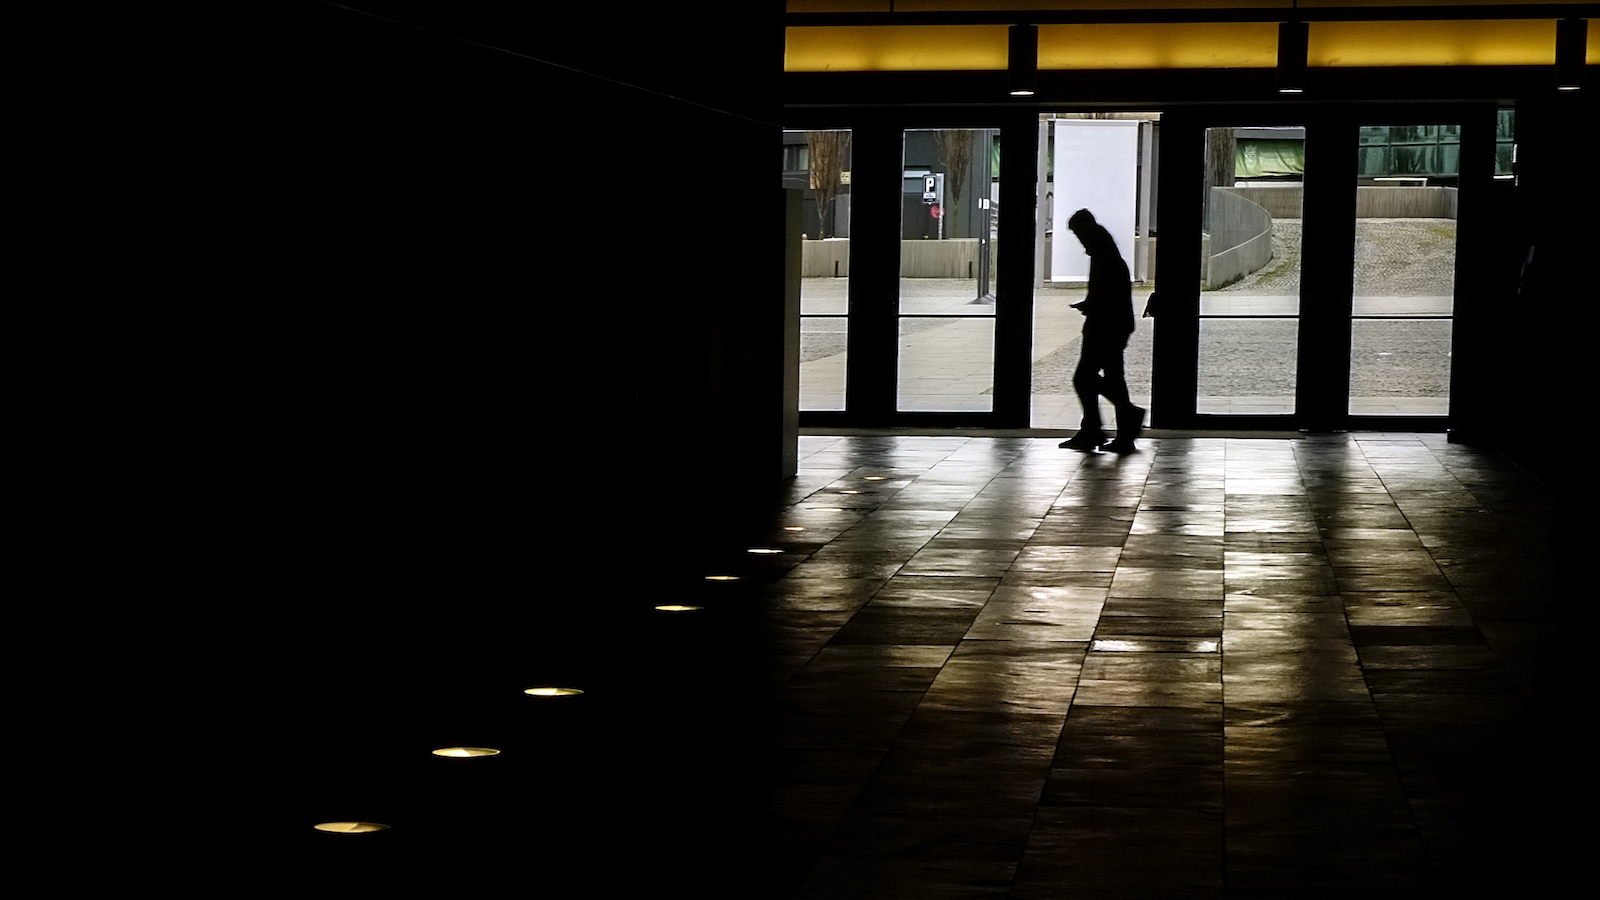 People walk past inside at a auditorium beside to a line of spotlights for the illumination of the place, in Pamplona, northern Spain, Monday, March 6, 2017. (AP Photo/Alvaro Barrientos)